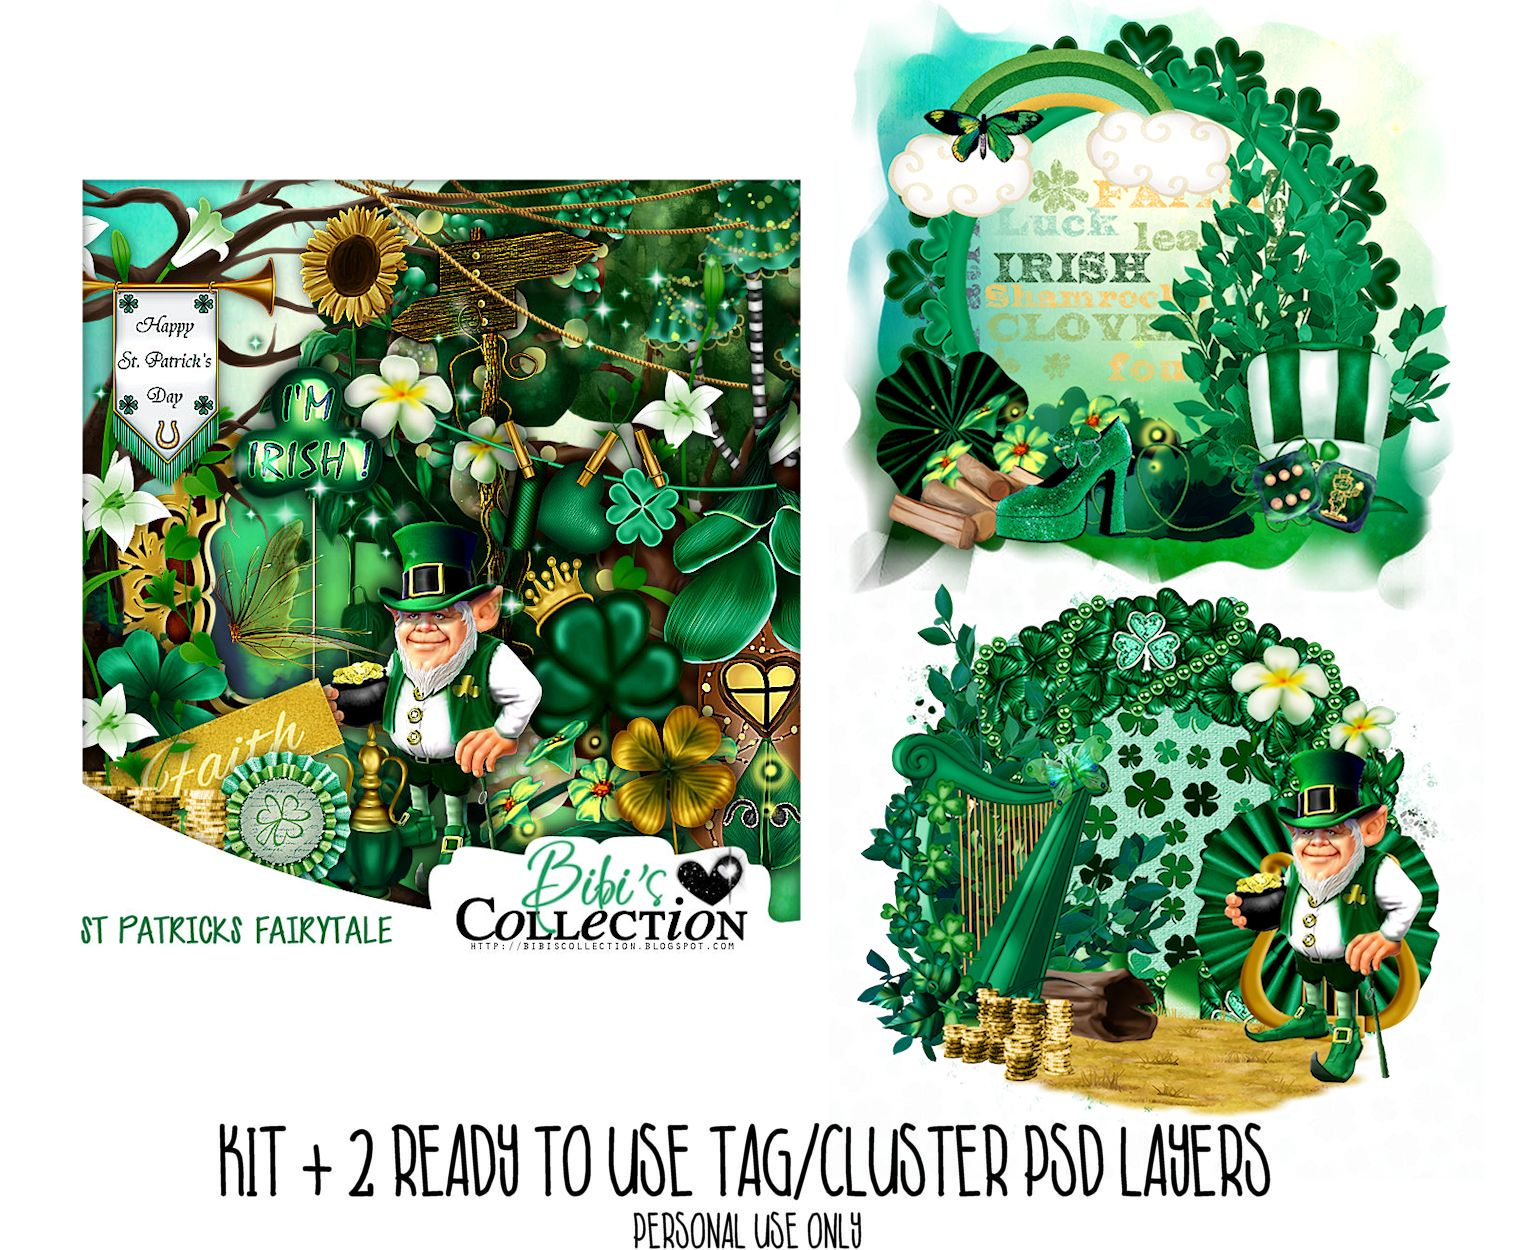 ST PATRICKS FAIRYTALE KIT+ READY CLUSTER TAGS PSD